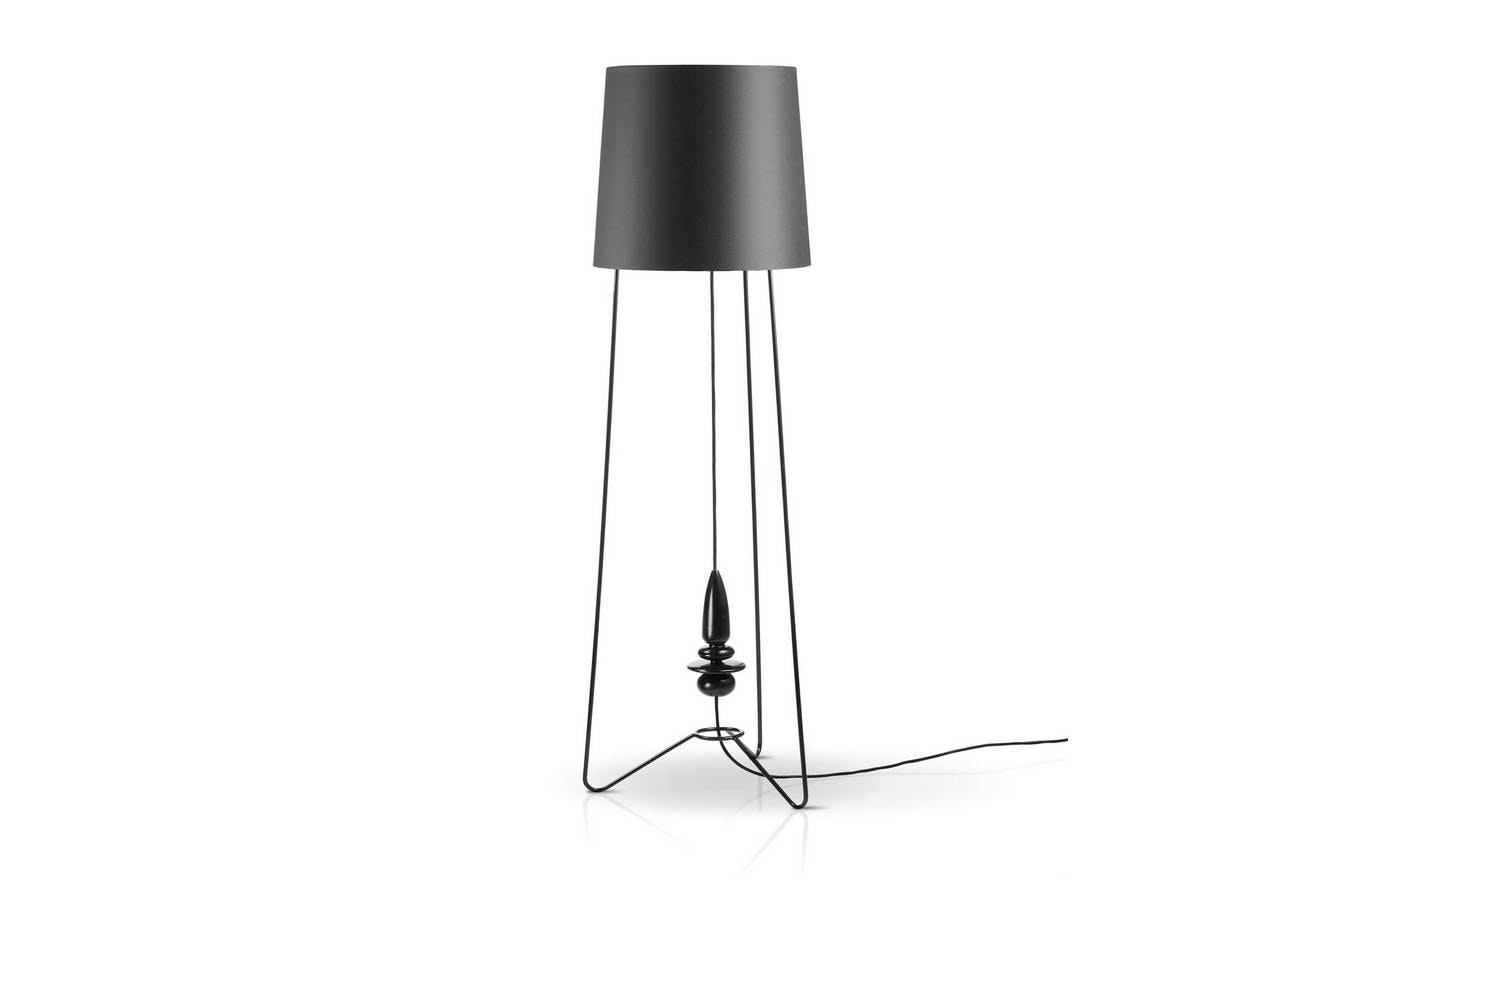 Daddy Longleg Floor Lamp by Henrik Pedersen for Frandsen Lighting